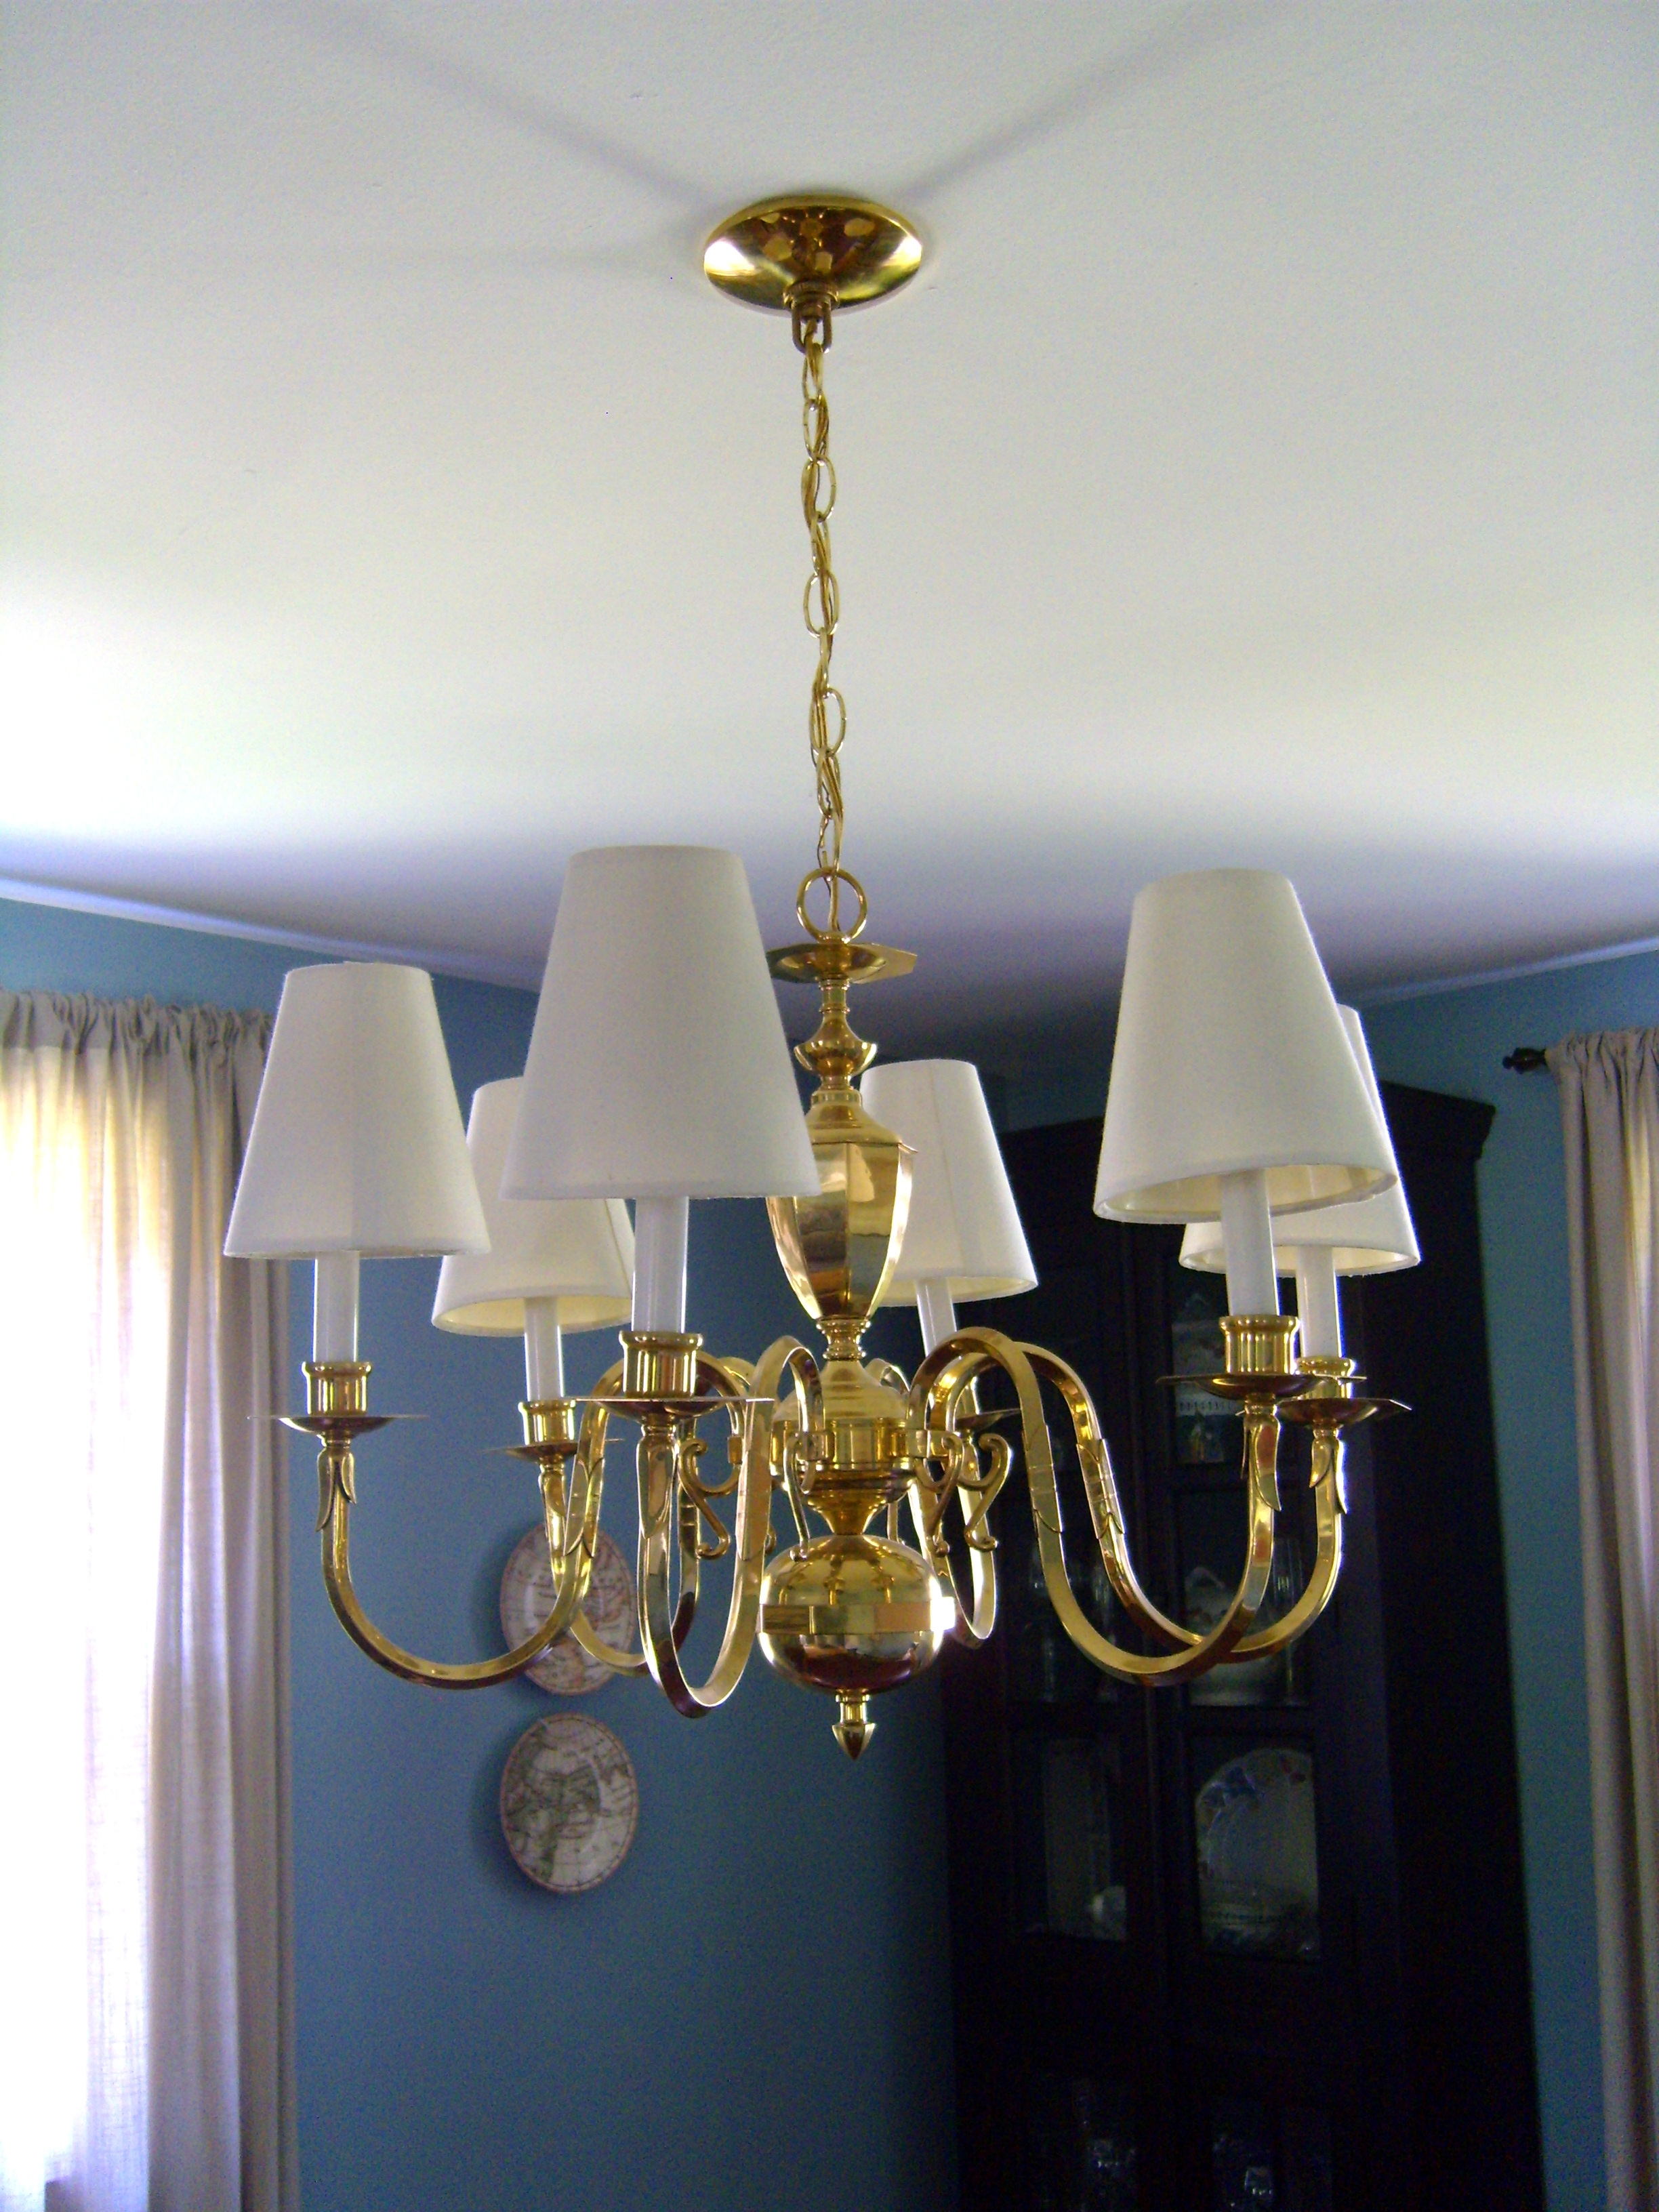 Furniture : Small Drum Lamp Shades Chandelier Saving Space Mini Throughout Trendy Chandelier Light Shades (View 4 of 20)